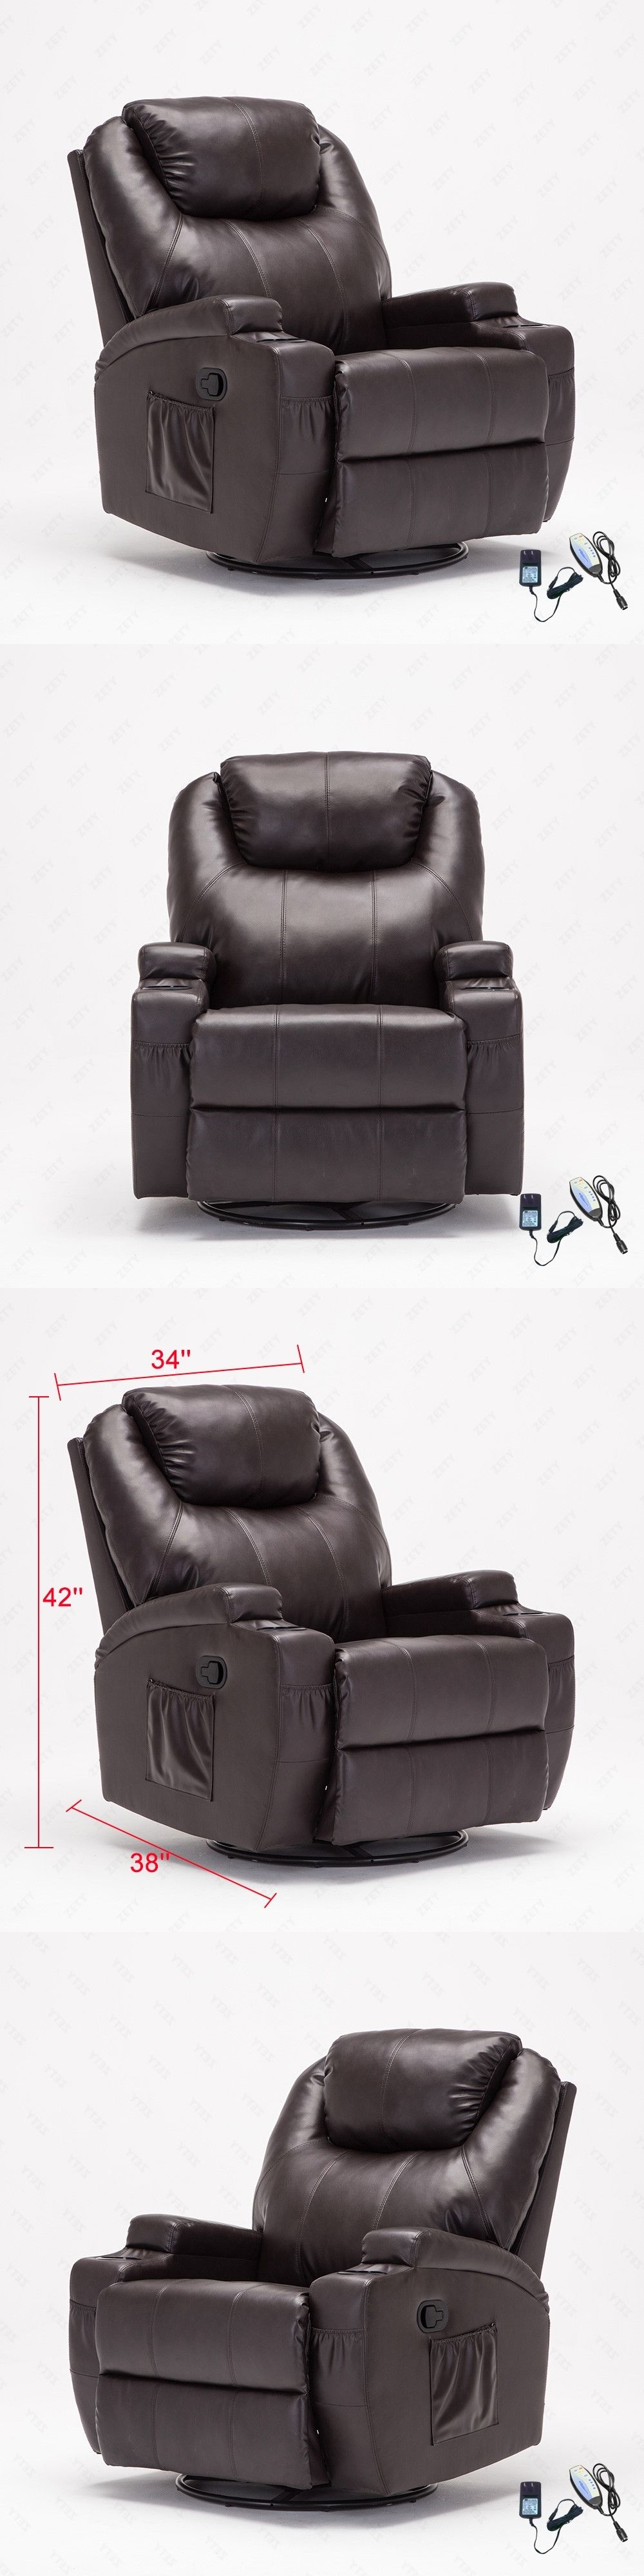 Electric Massage Chairs Brown Massage Recliner Sofa Lounge Chair